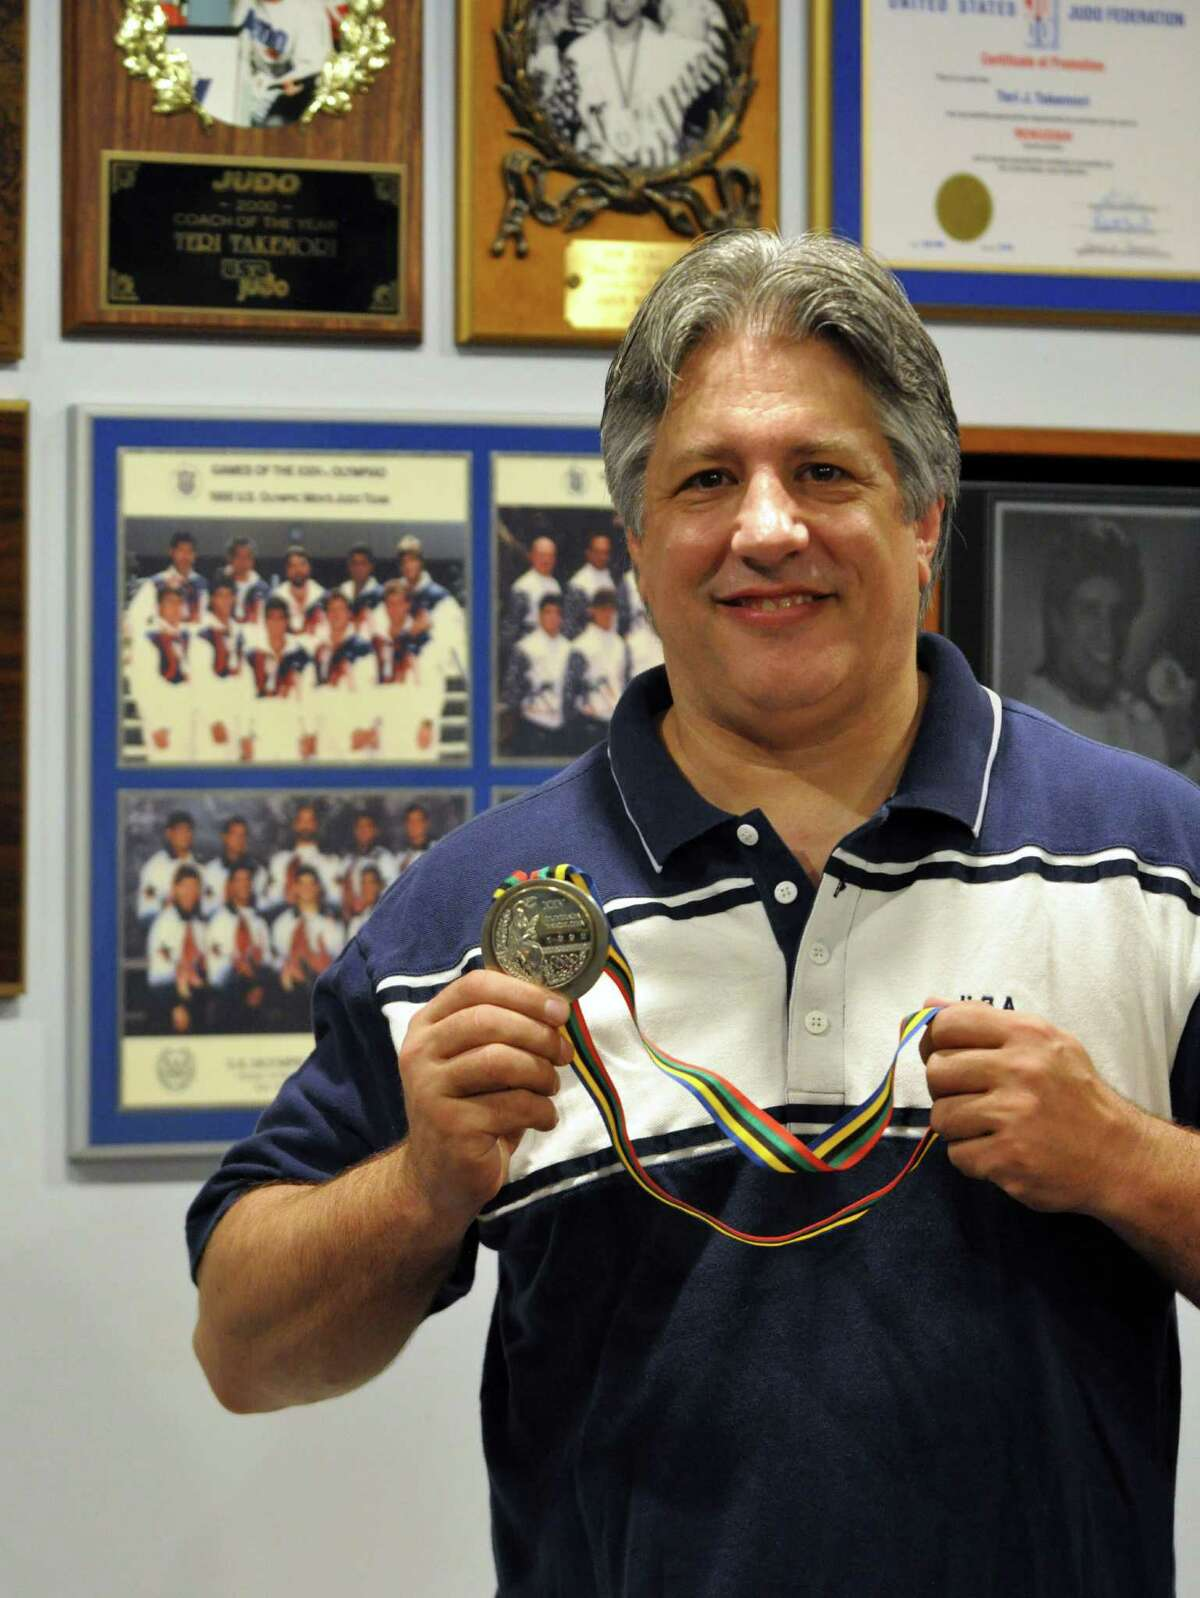 Jason Morris, a 1992 Olympic Silver Medalist in Judo, poses for a photograph with his medal in his office on Friday, Aug. 5, 2016 in Scotia, N.Y. (Eliza Mineaux/Special to the Times Union)